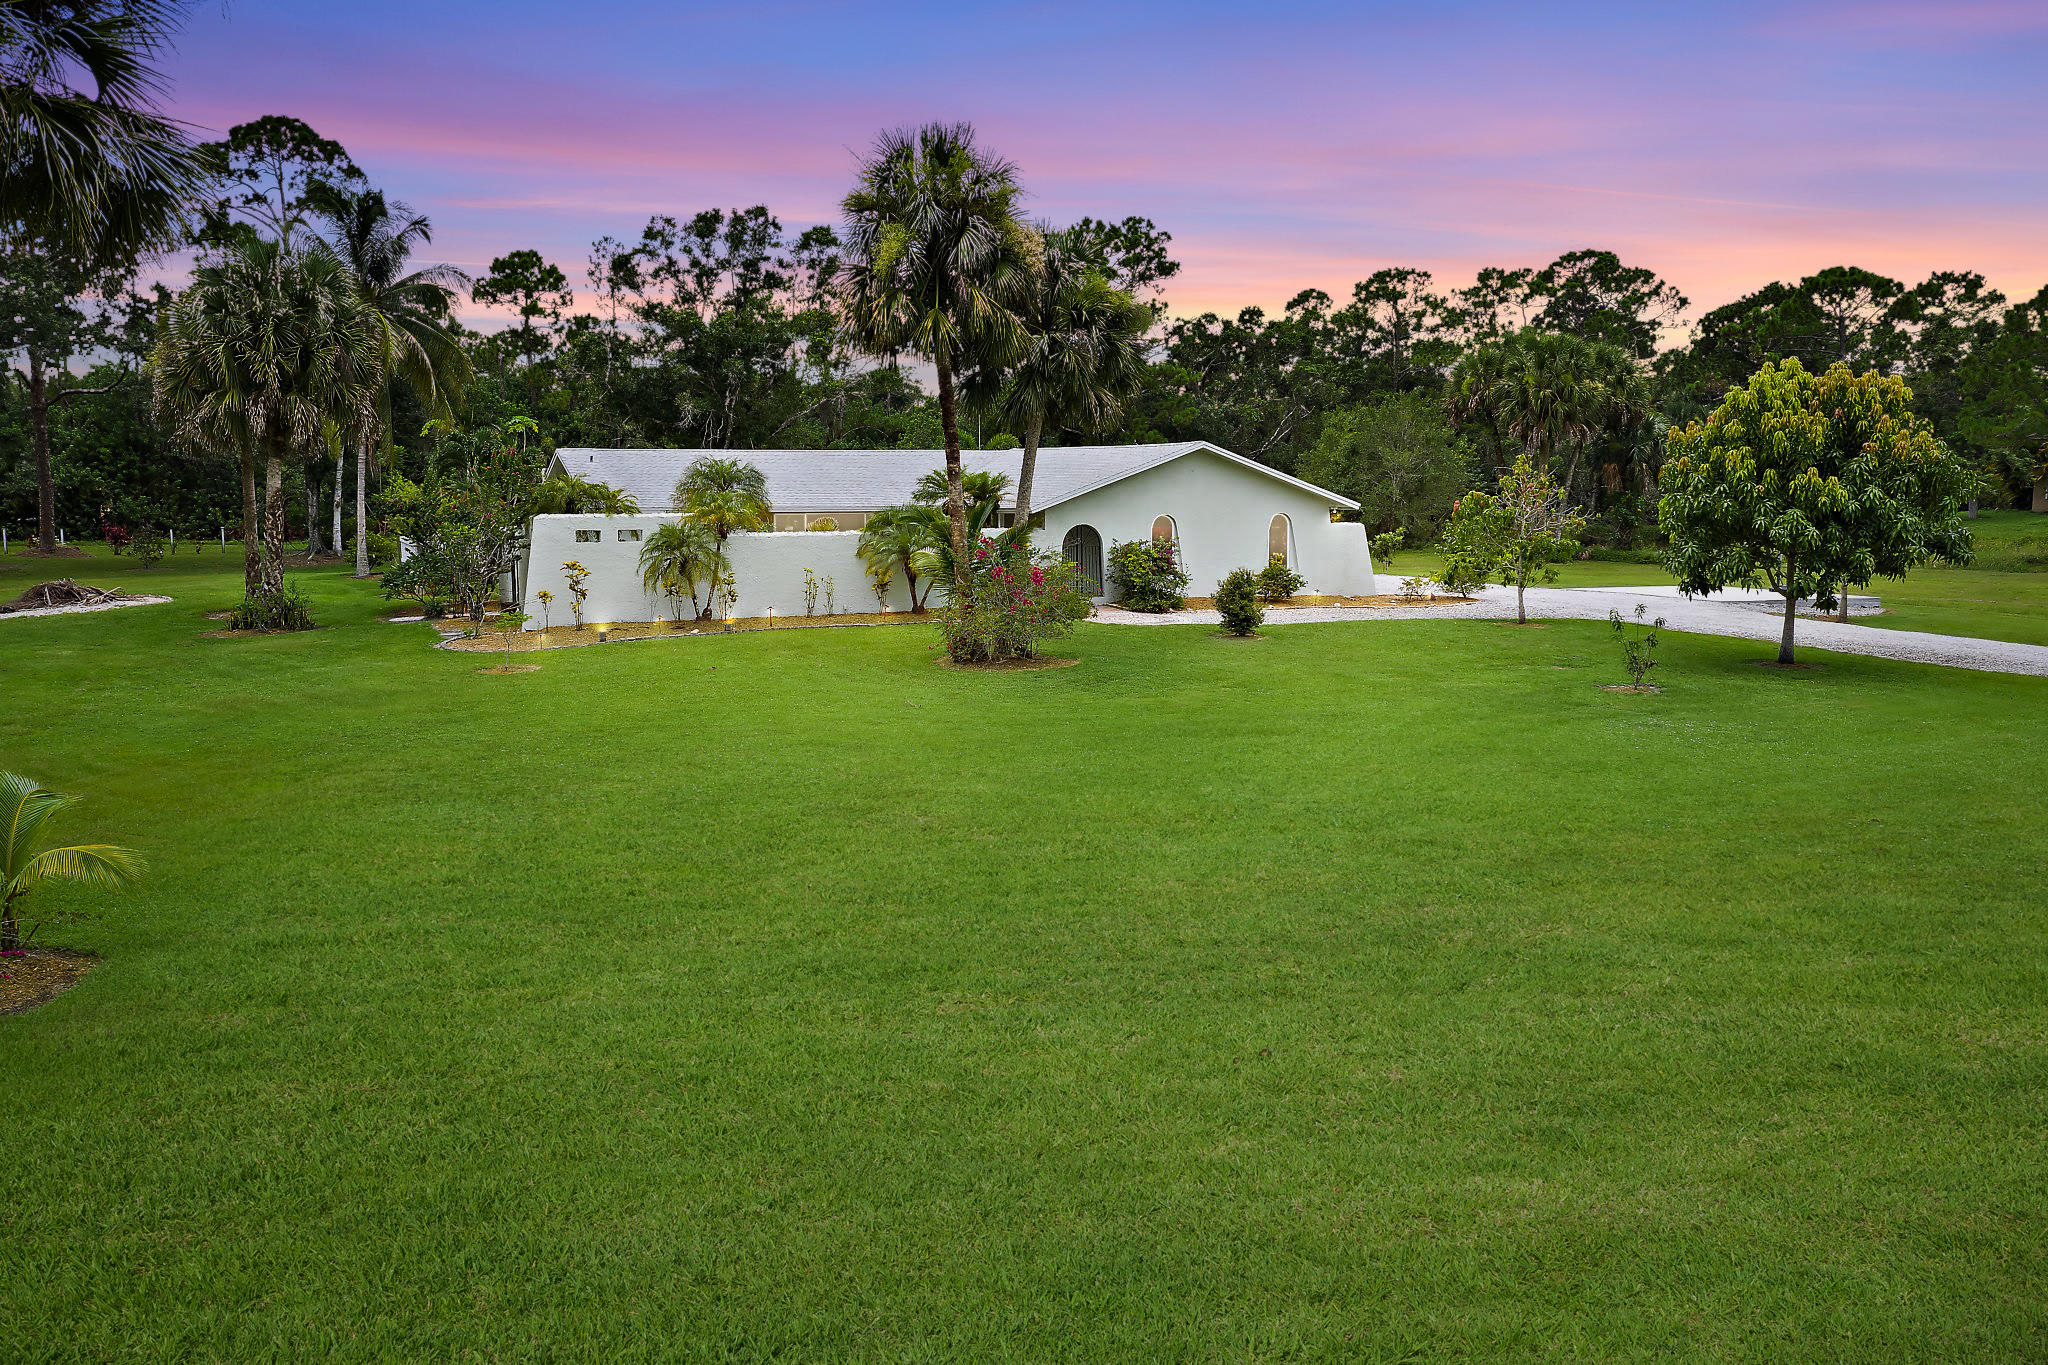 New Home for sale at 10046 175th Road in Jupiter